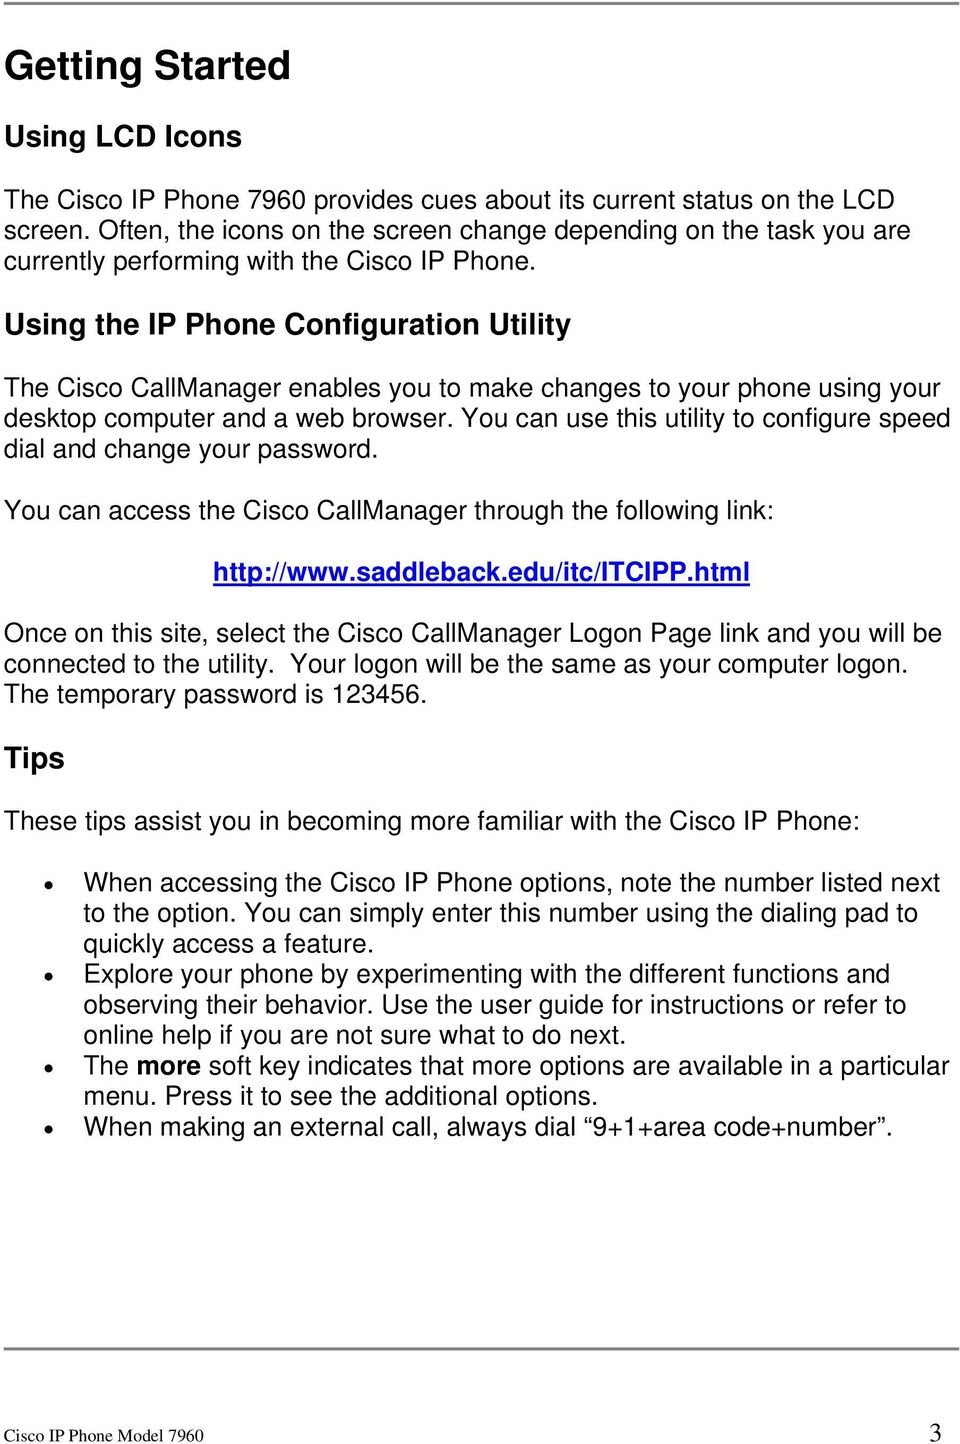 Using the IP Phone Configuration Utility The Cisco CallManager enables you to make changes to your phone using your desktop computer and a web browser.